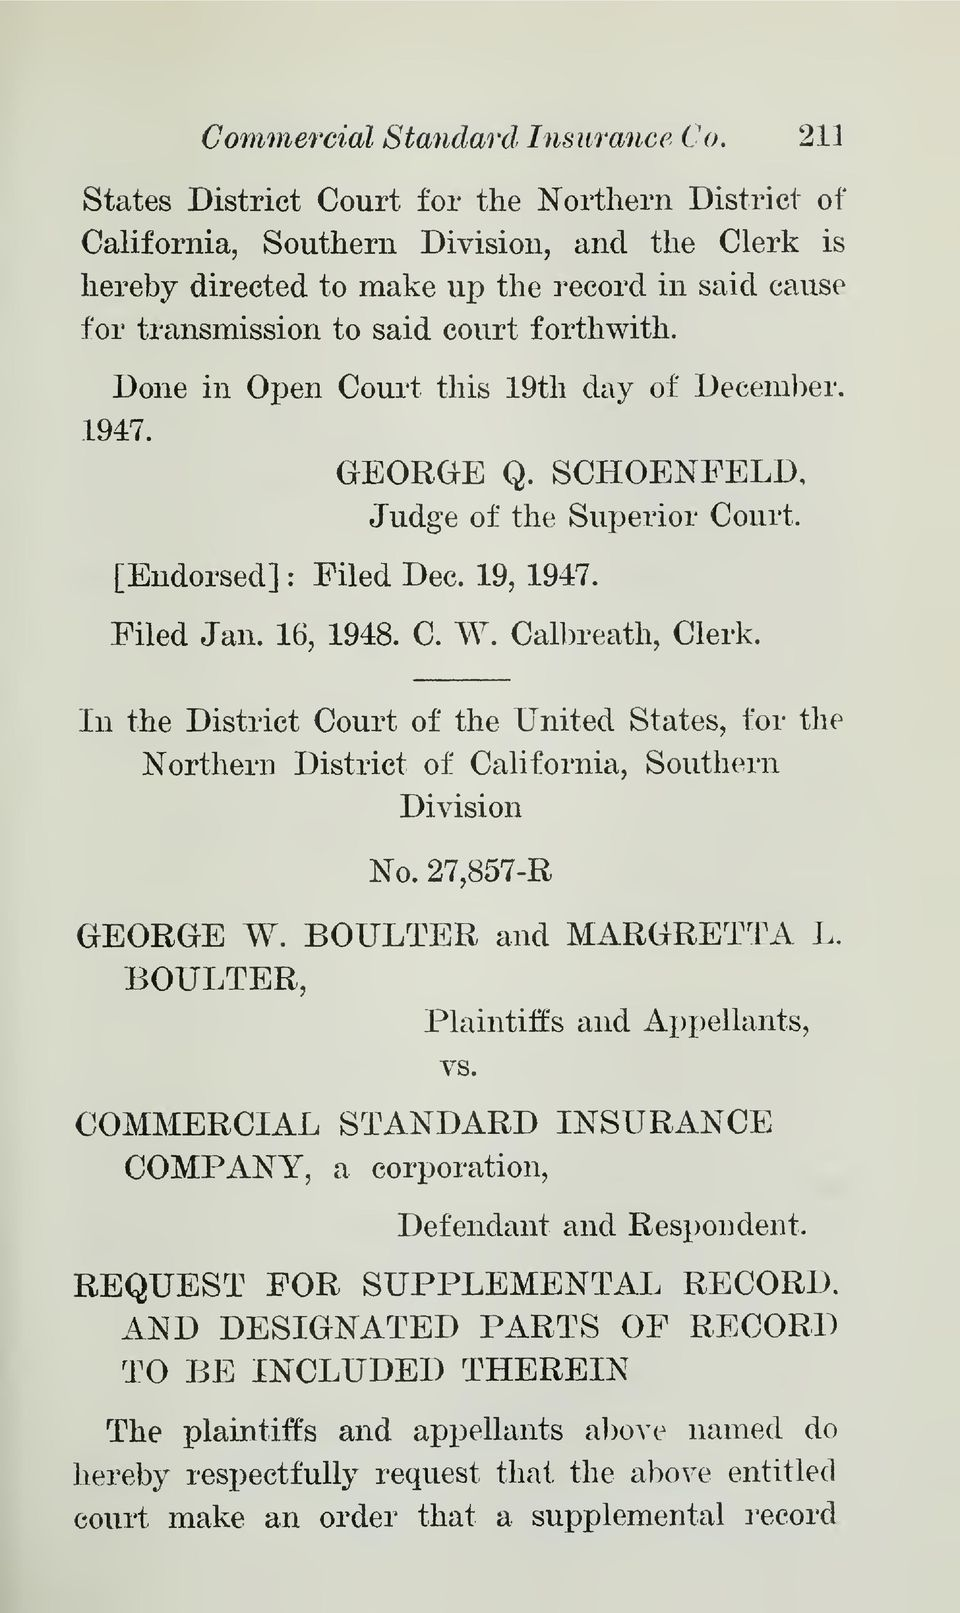 Done in Open Court this 1947. 19th day of Deceml^er, GEORaE Q. SCHOENFELD, Judge of the Superior Court. [Endorsed] : Filed Dec. 19, 1947. Filed Jan. 16, 1948. C. W. Calbreath, Clerk.